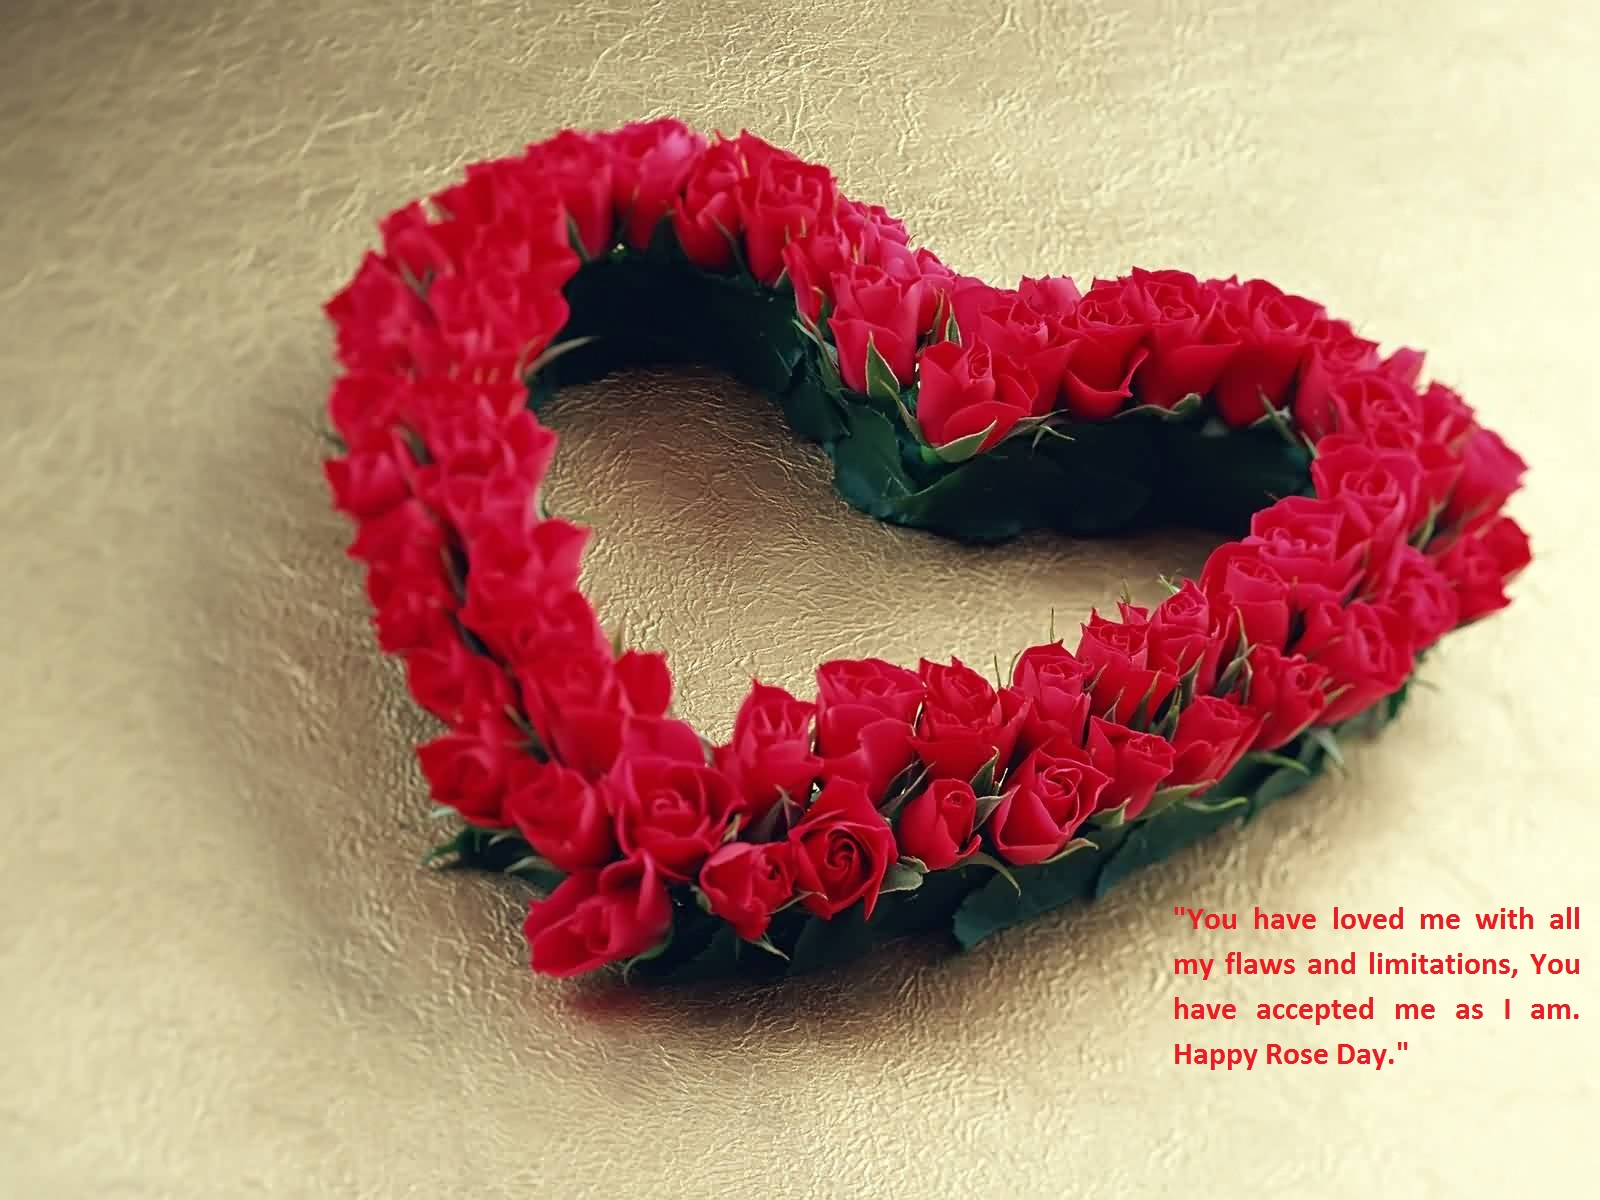 rose day wishes